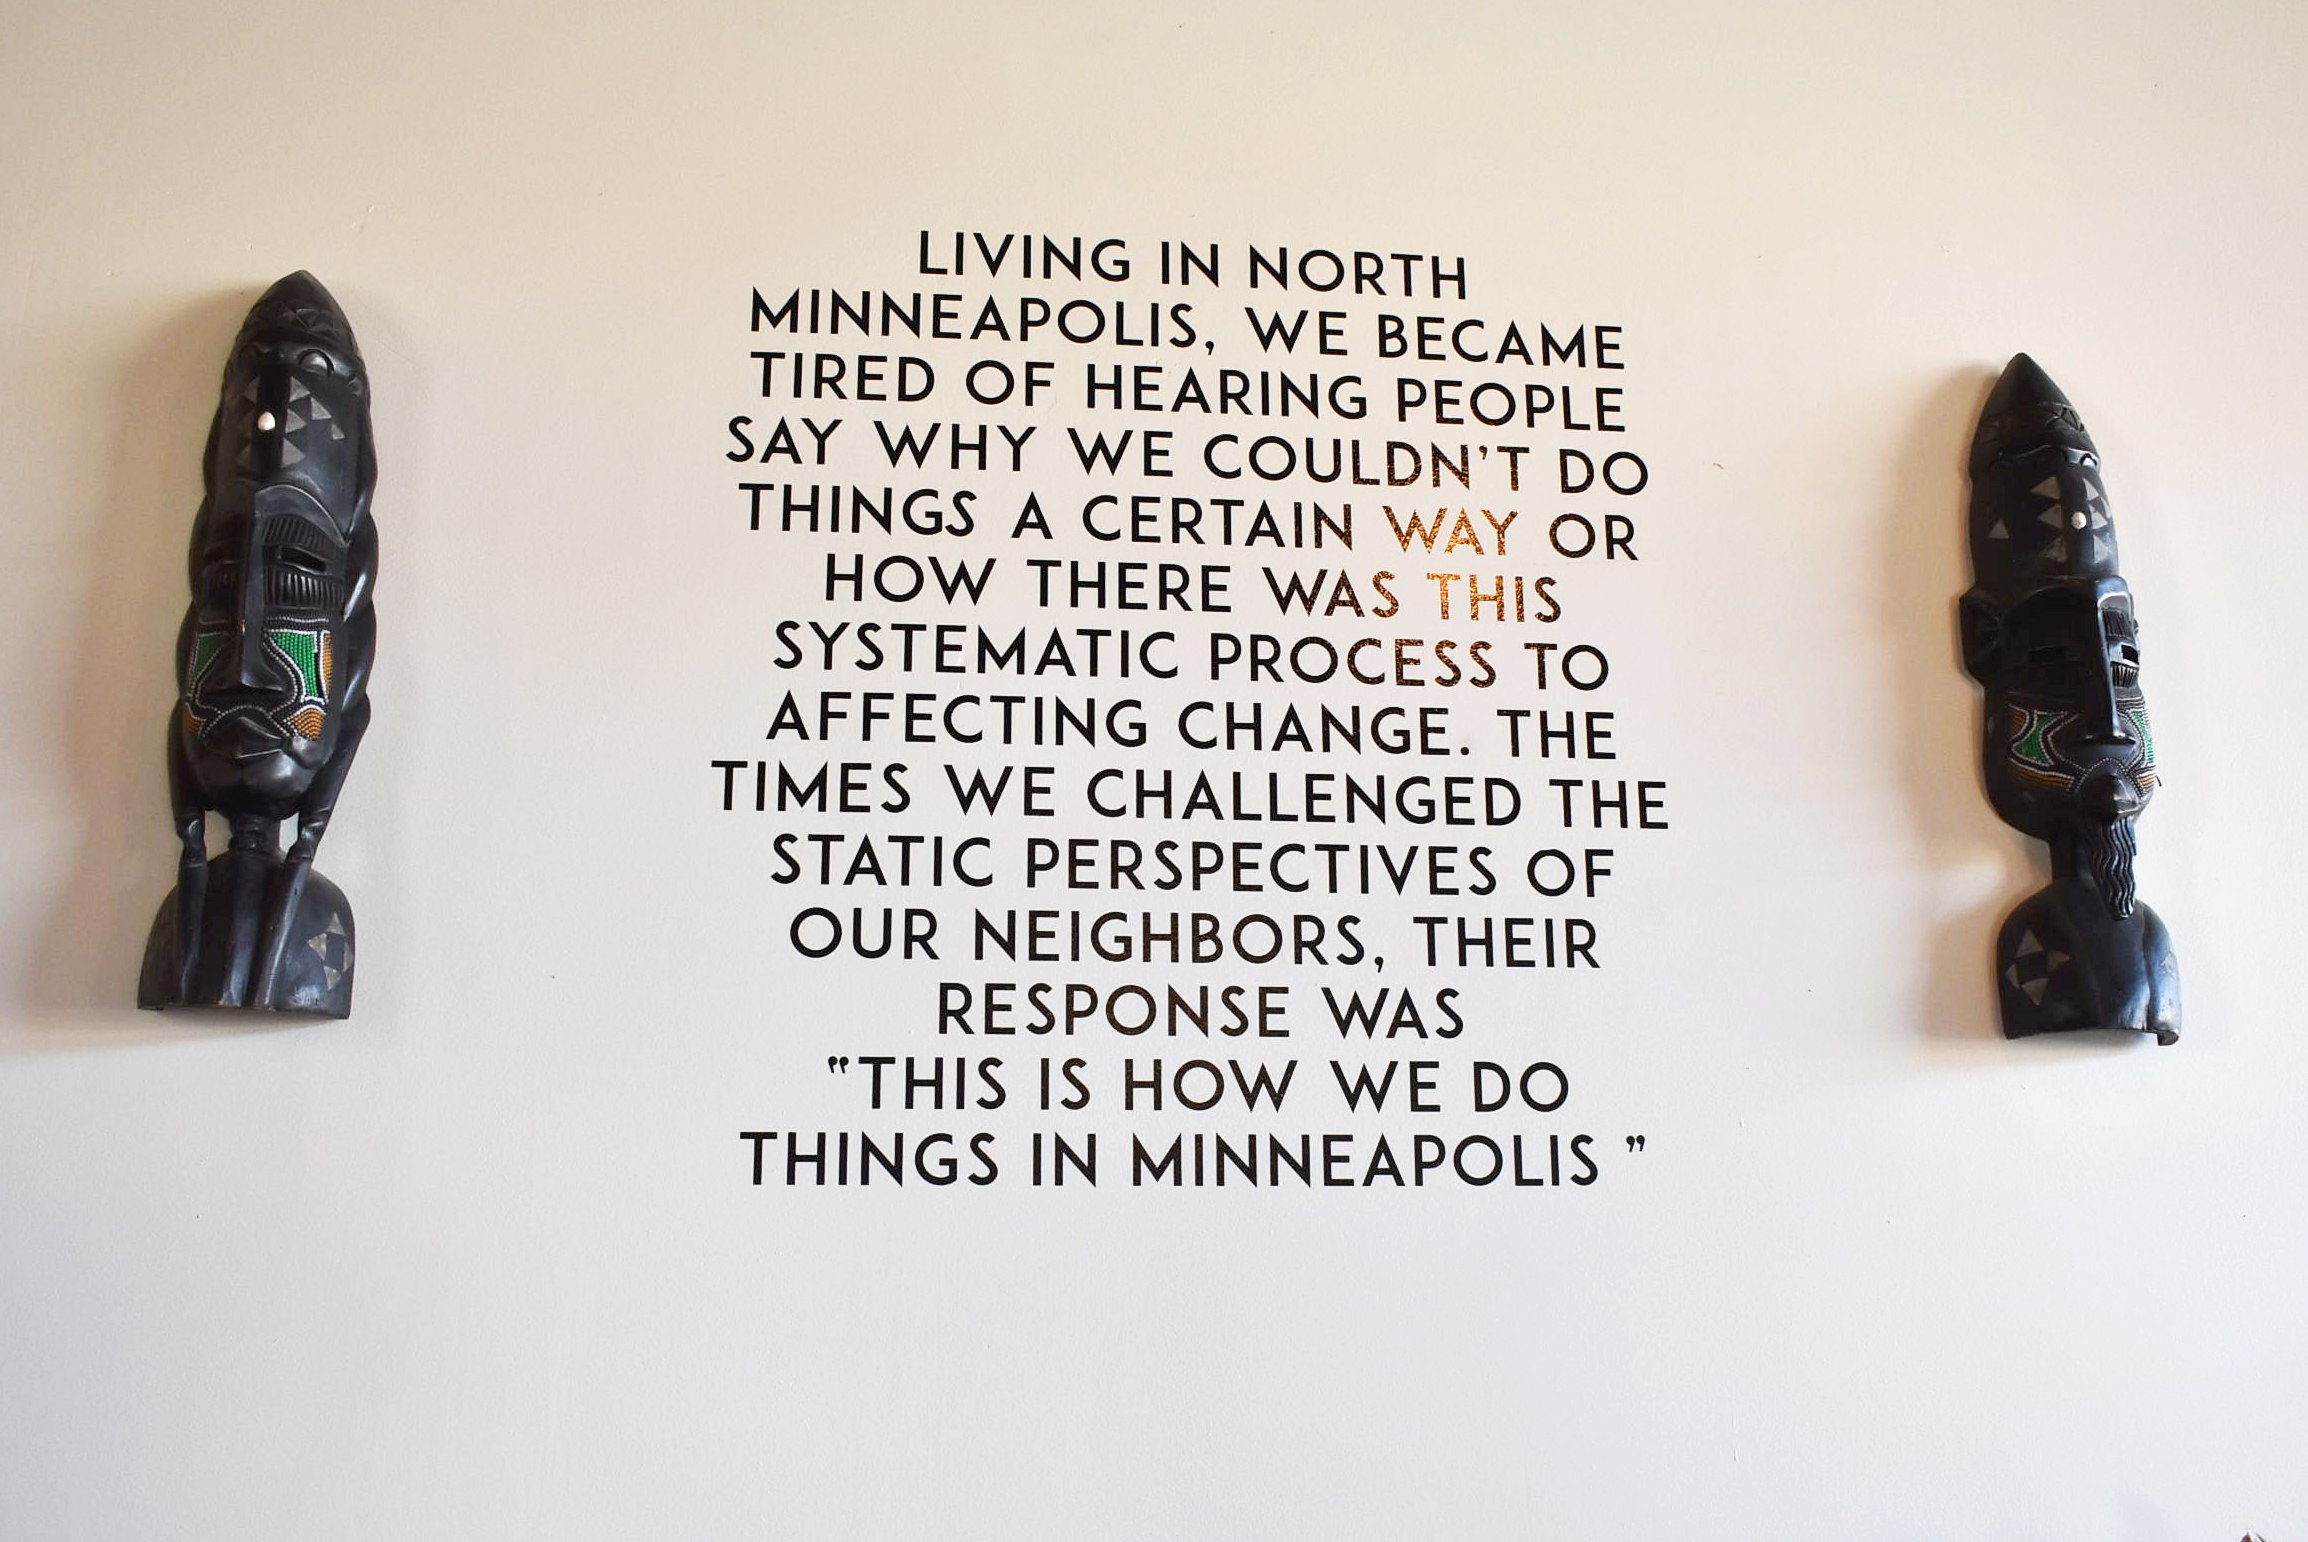 New Rules, a North Minneapolis - based shared work space and event meeting space, is celebrating its 2nd anniversary with a whole slew of events planned for October. The business has high hopes for its future and big dreams for North Minneapolis.  Photo by Cirien Saadeh